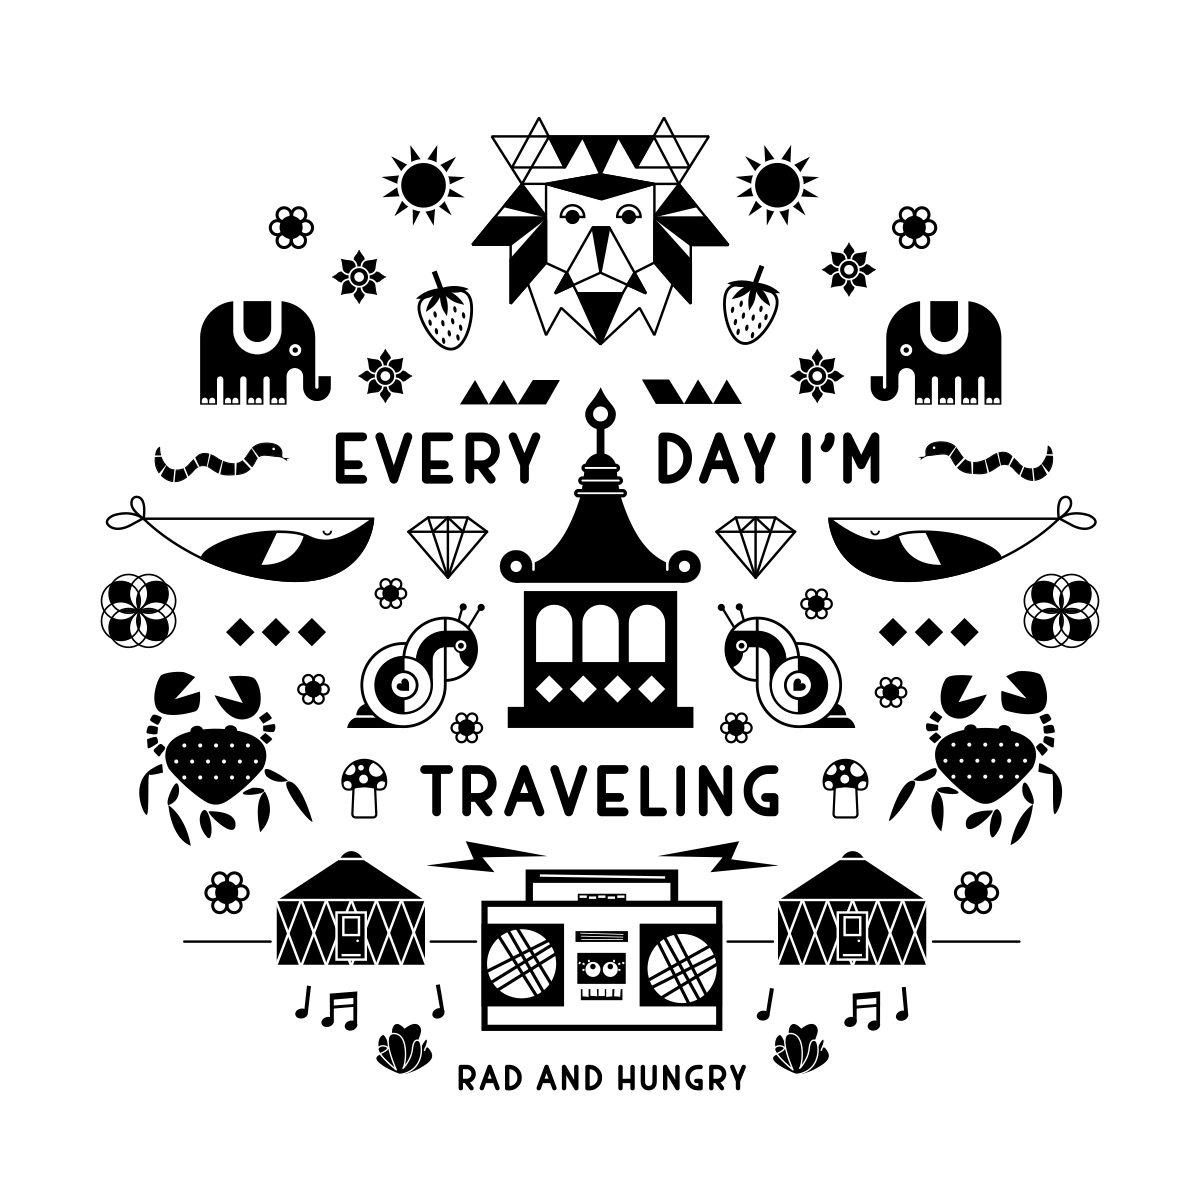 RAD AND HUNGRY: Every Day I'm Traveling